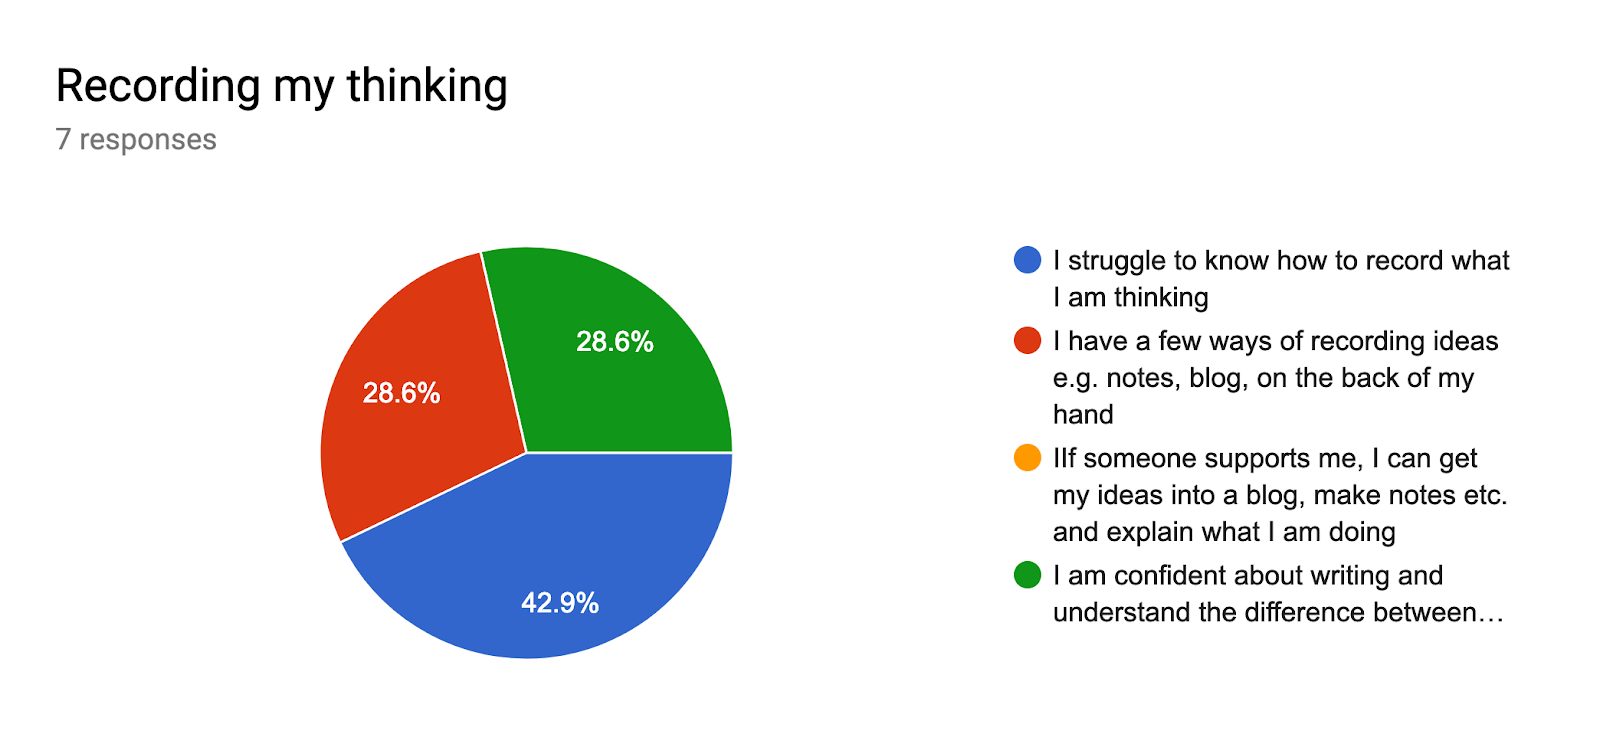 Forms response chart. Question title: Recording my thinking. Number of responses: 7 responses.